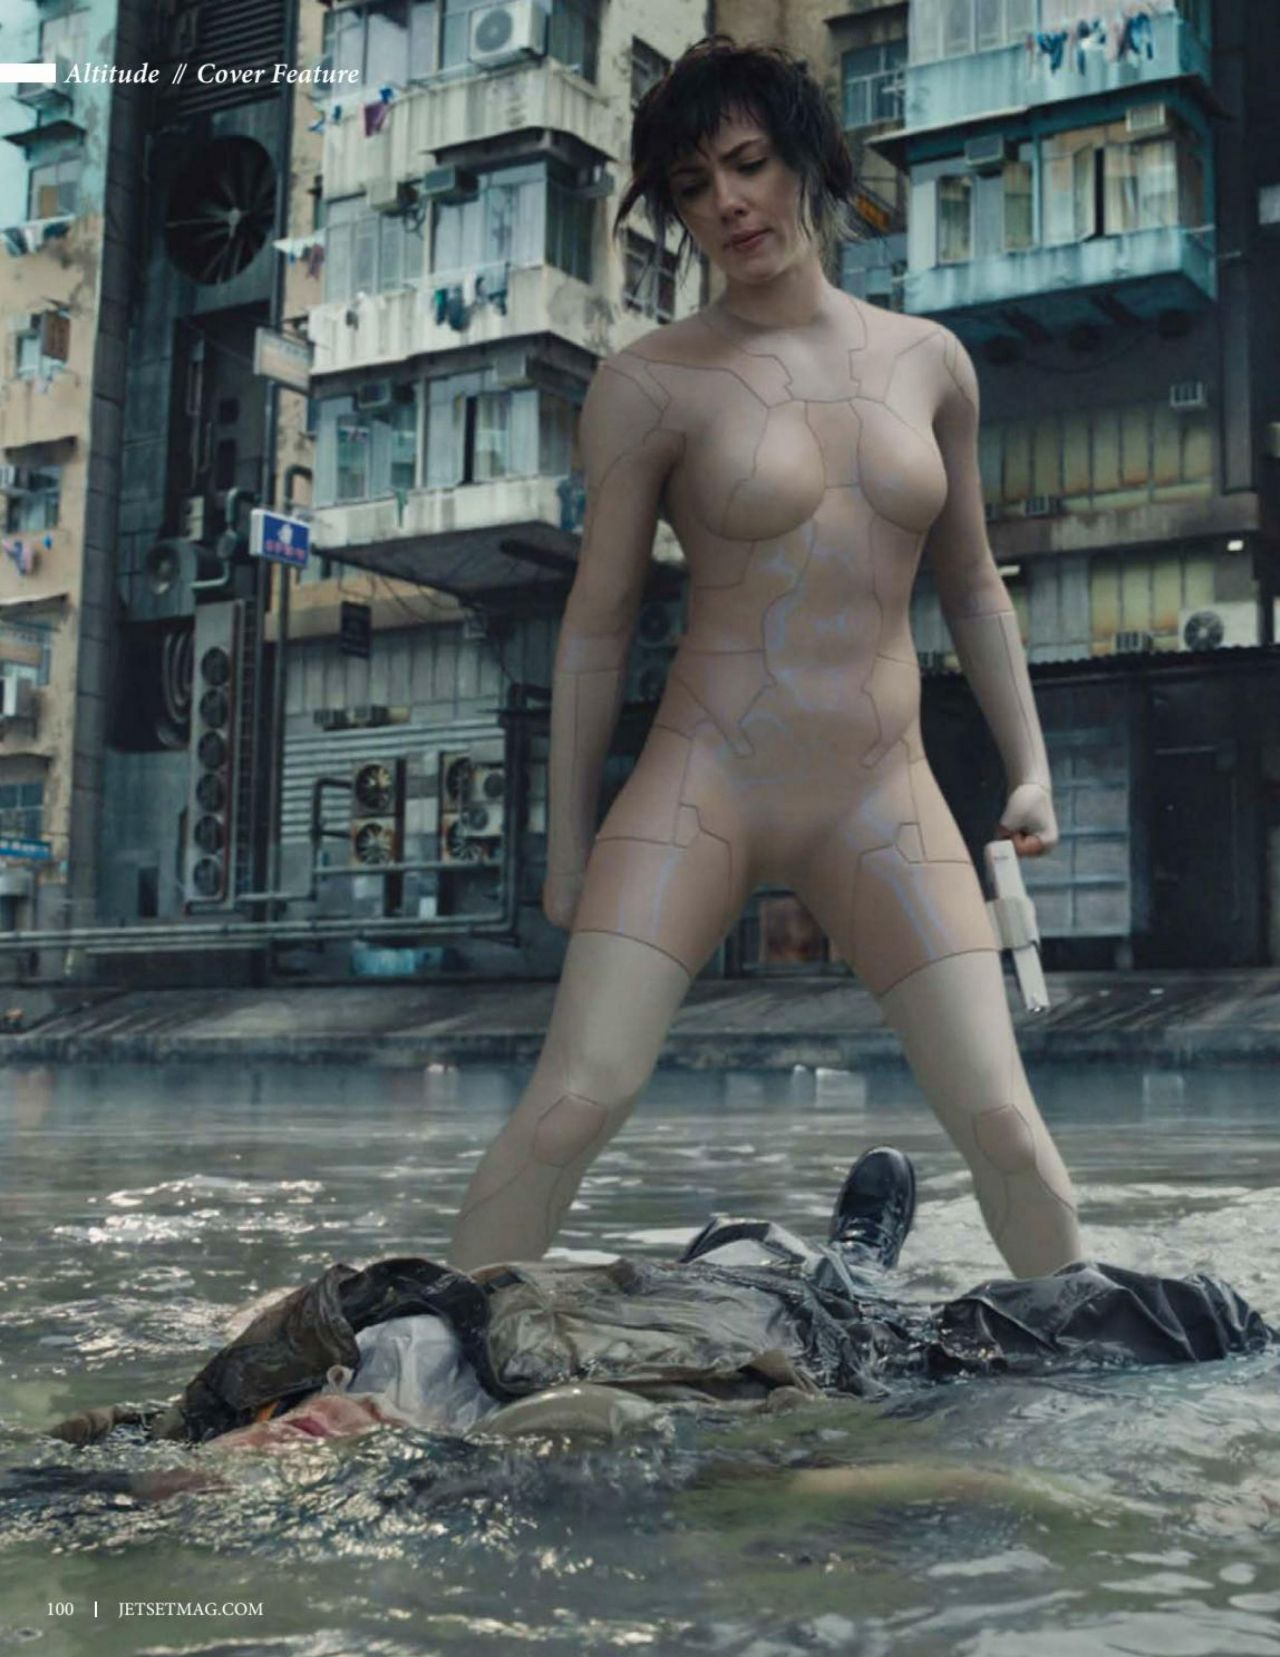 Ghost in the shell nude scene